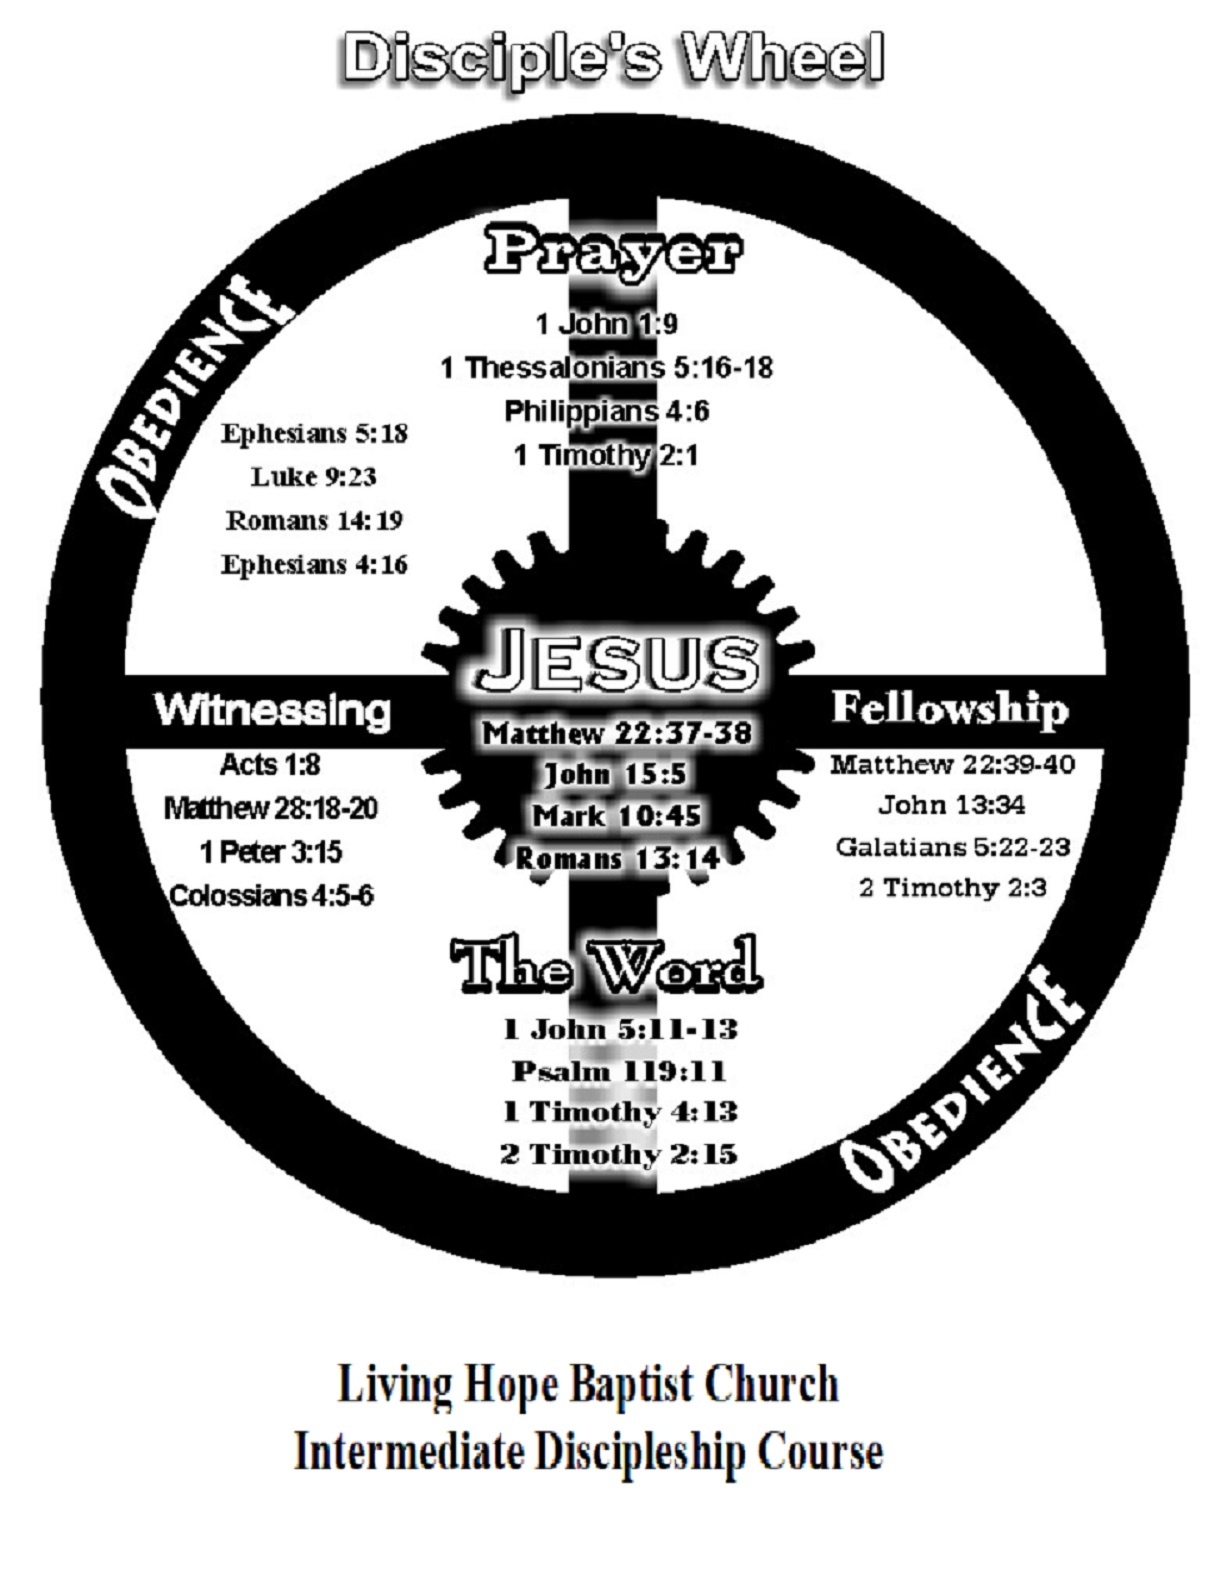 complete disciple wheel